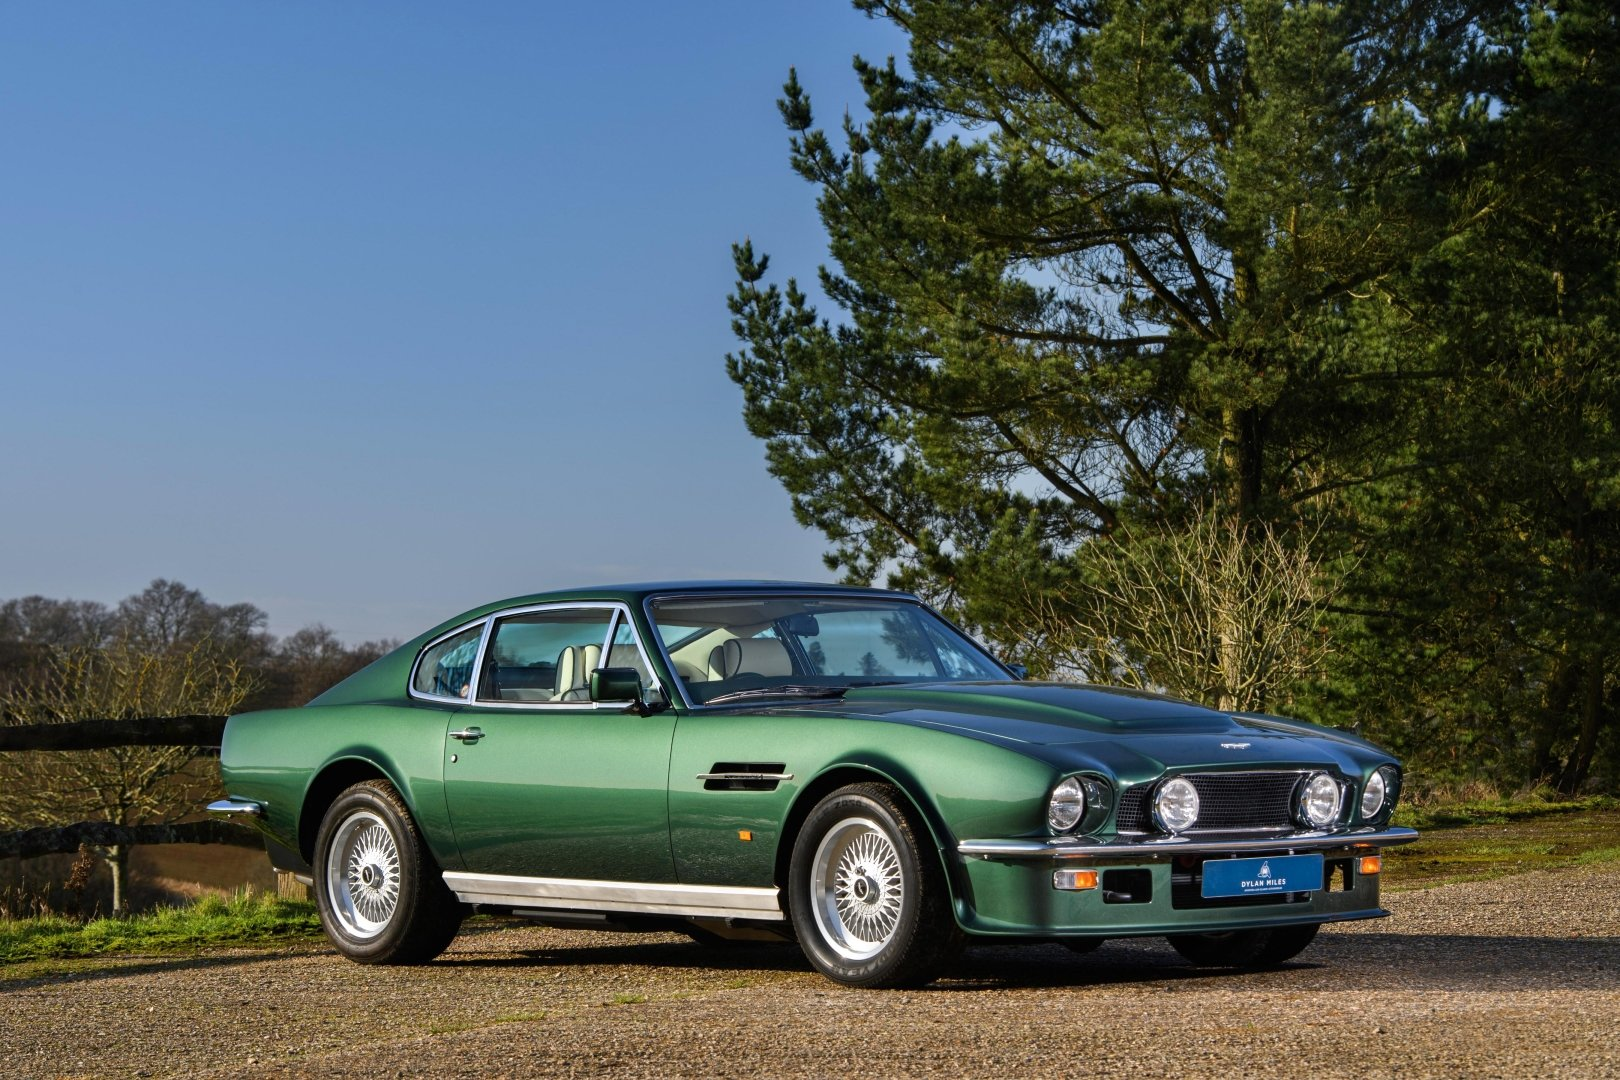 1989 Aston Martin V8 Vantage X Pack Coupe  For Sale (picture 1 of 6)